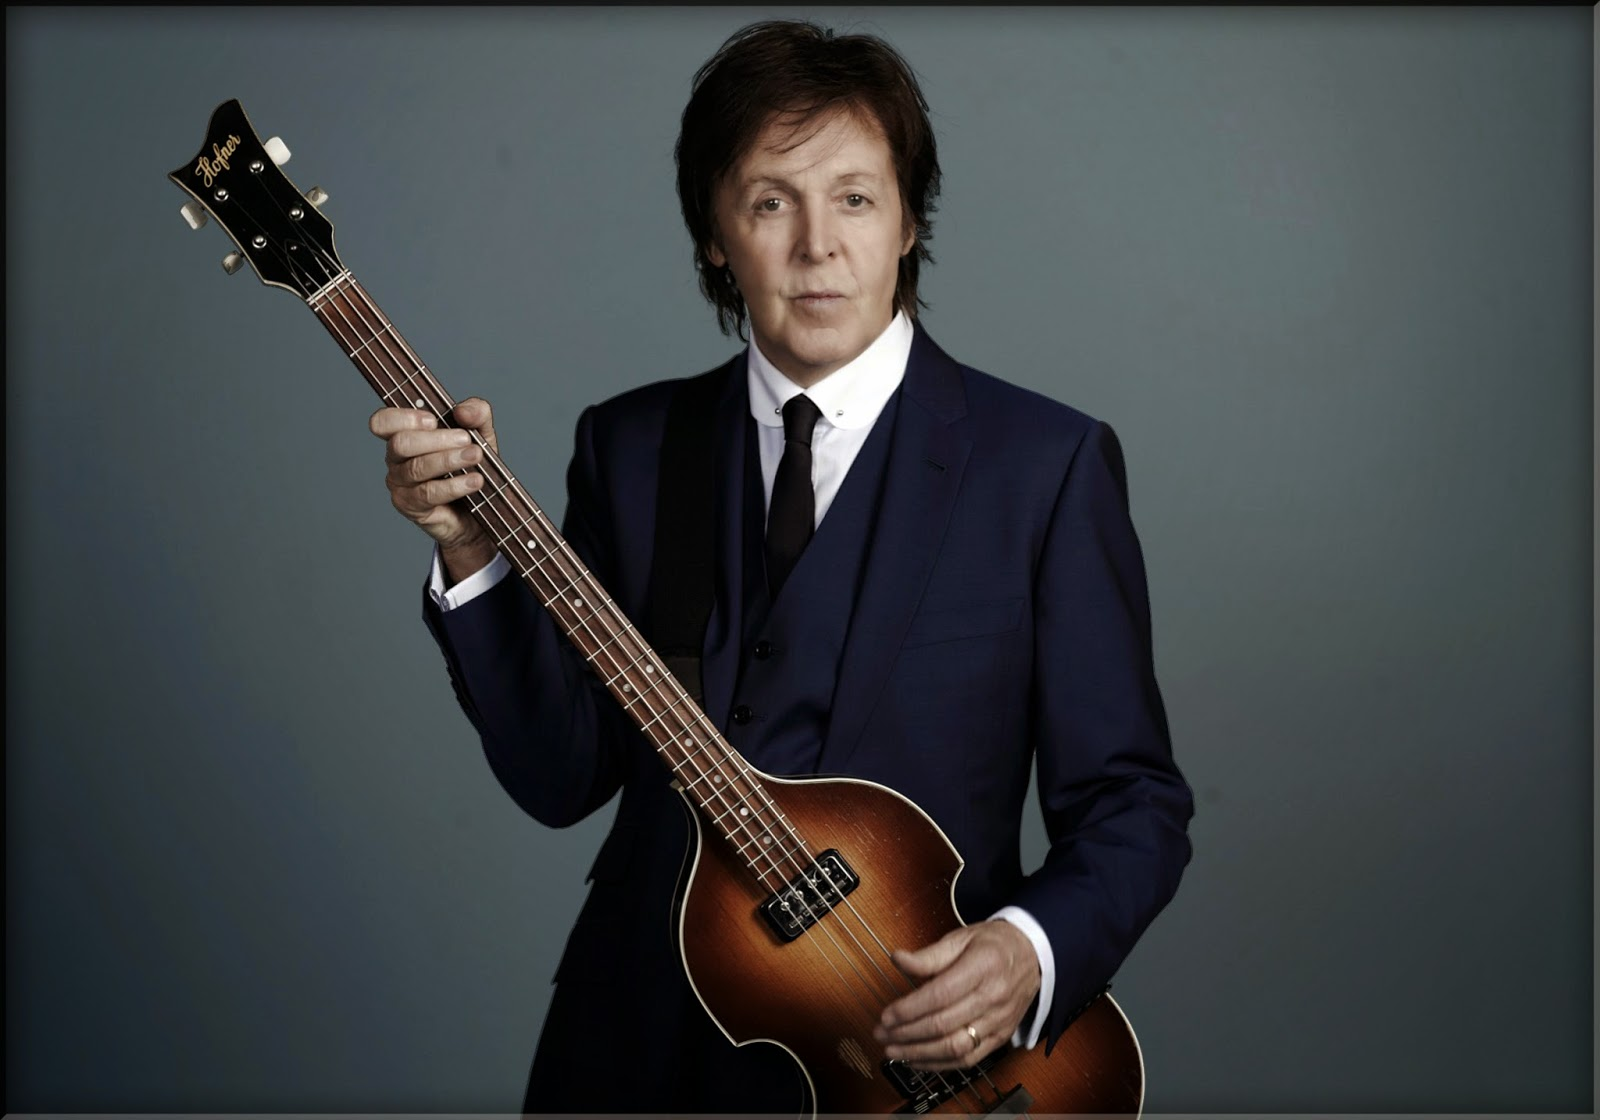 Sir Paul McCartney Hofner Bass Beatles Number One Hit Hits John Lennon Died 1980 Single Kanye